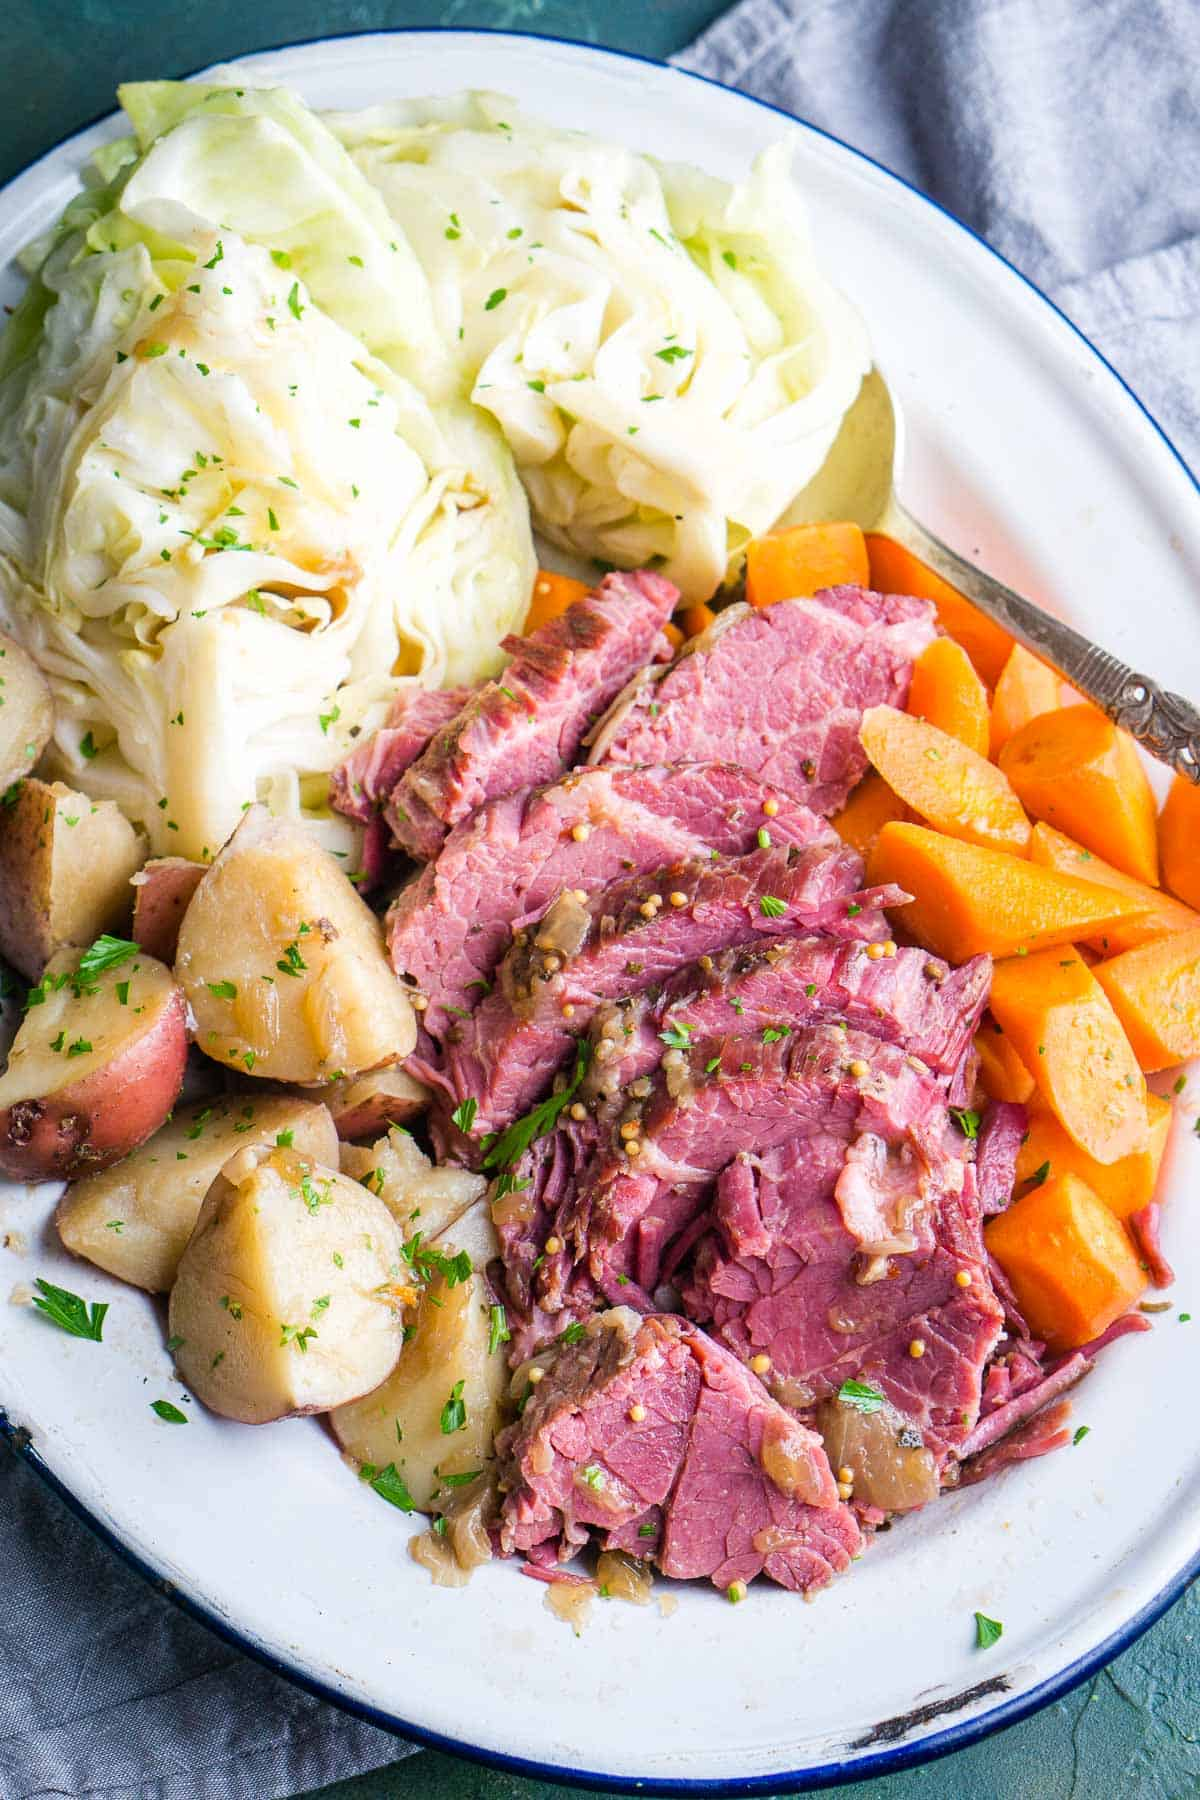 sliced corned beef and cabbage with potatoes and carrots on white serving platter